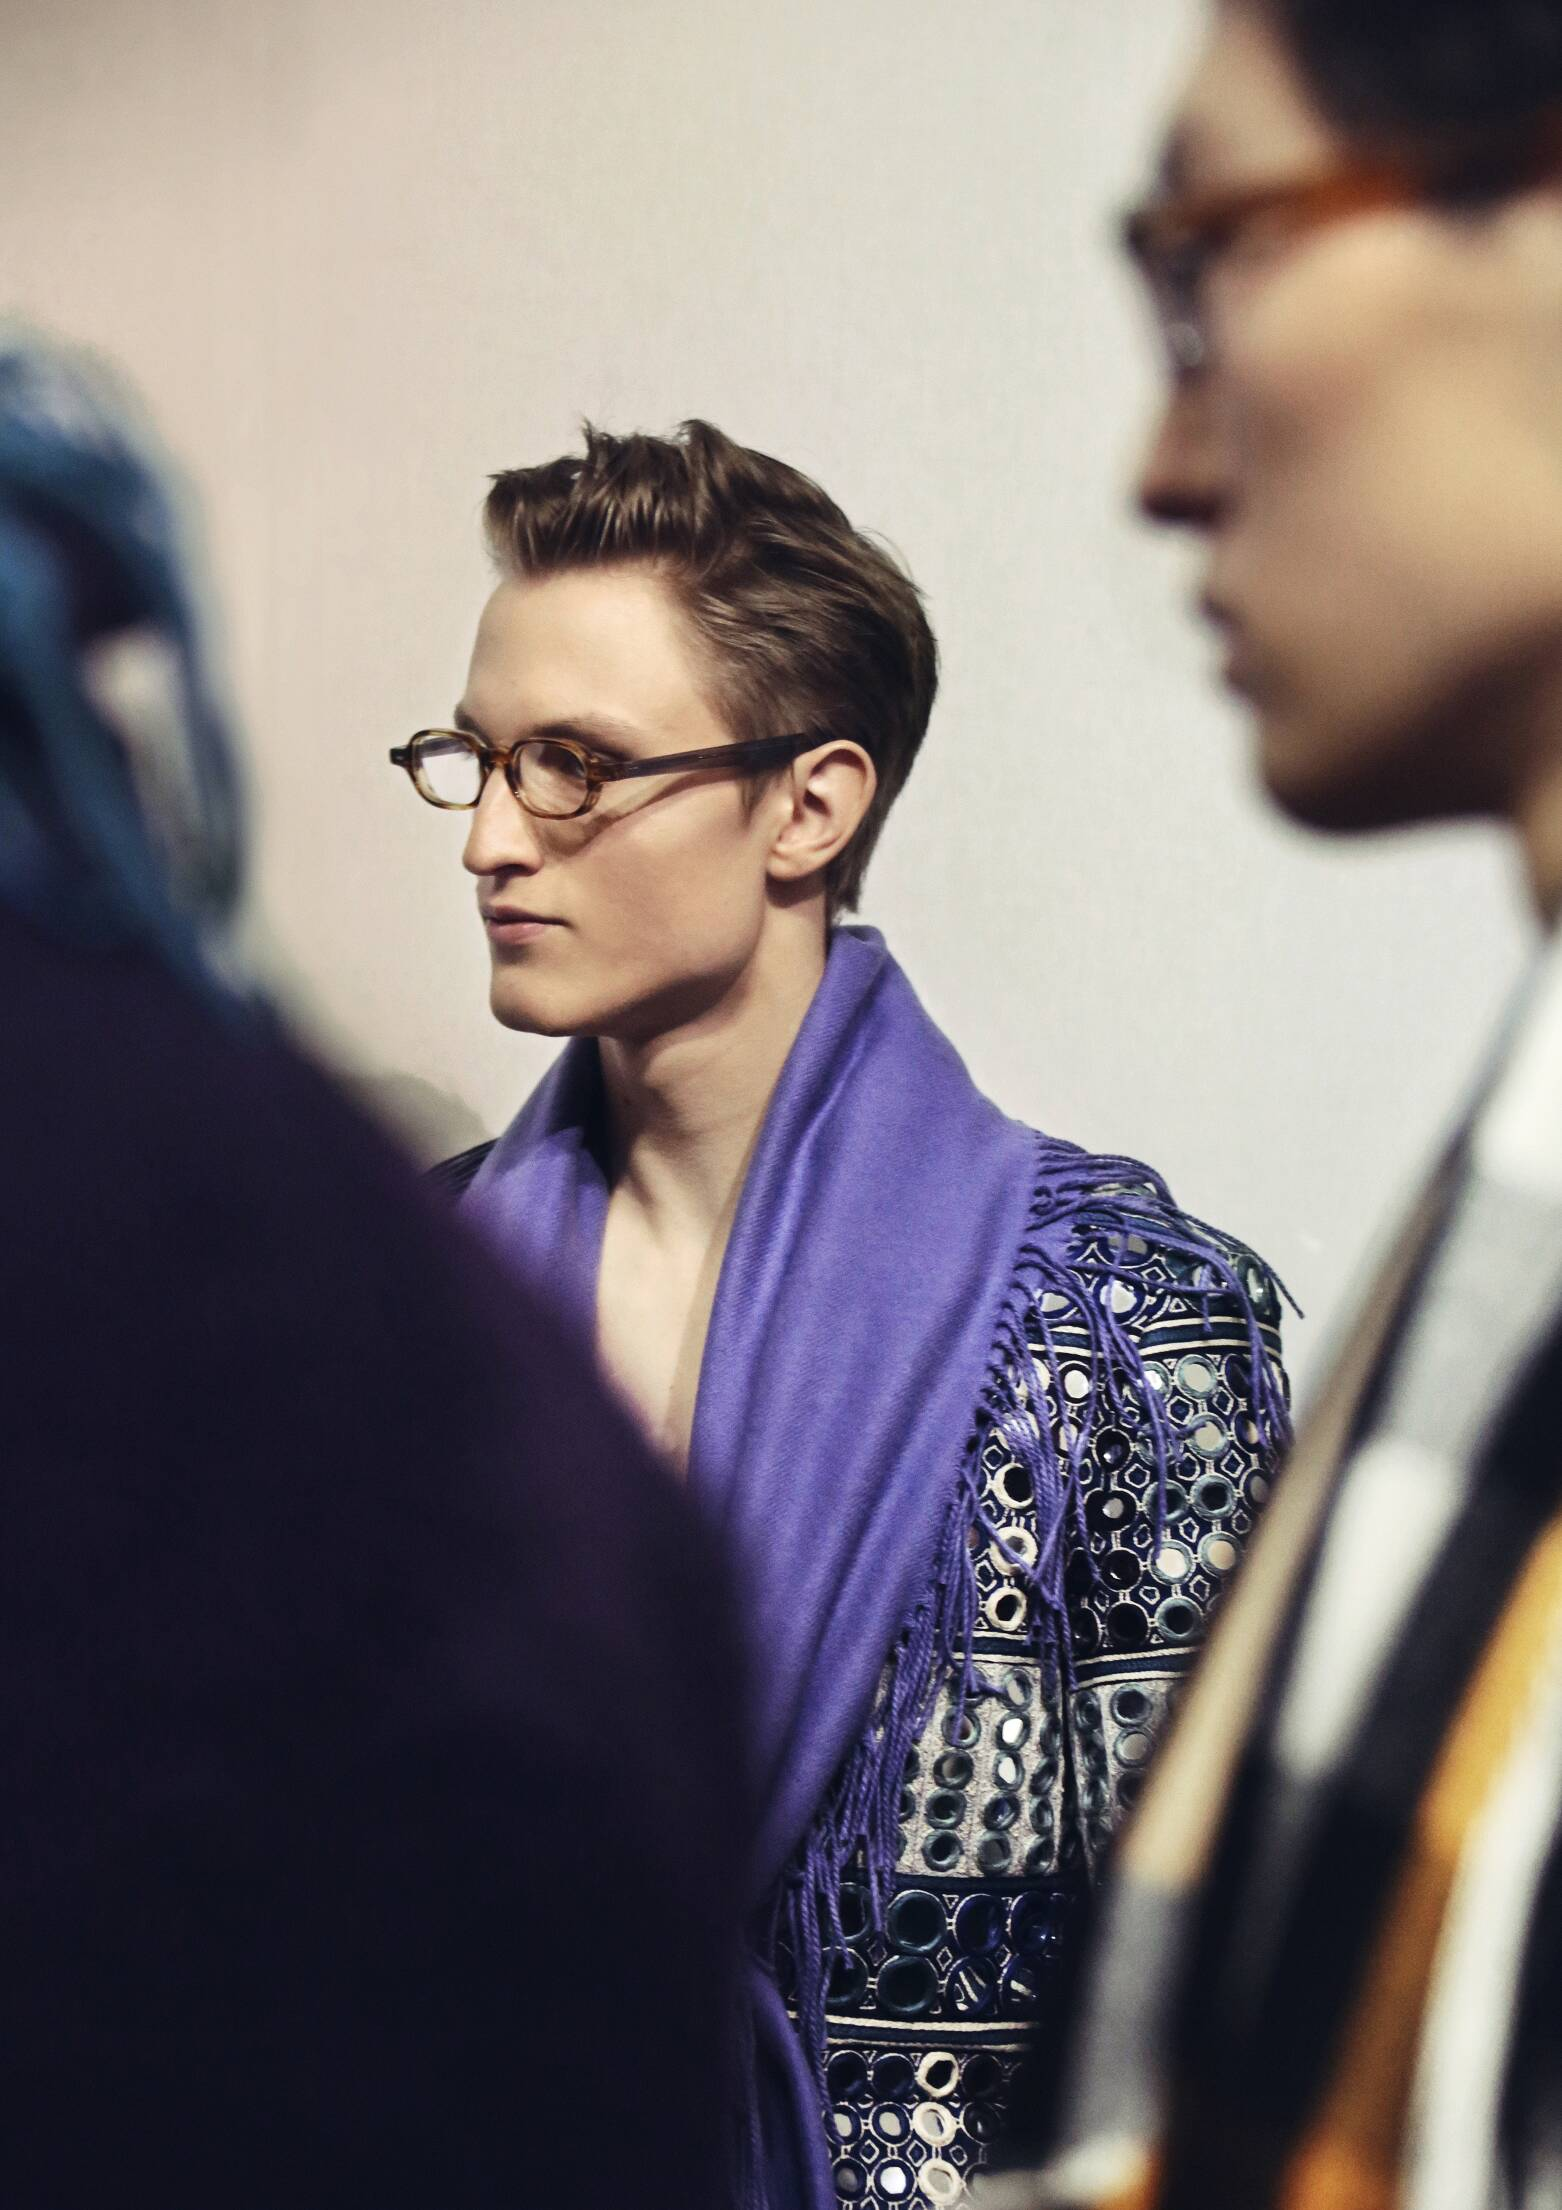 Backstage Burberry Prorsum Model Menswear Trends